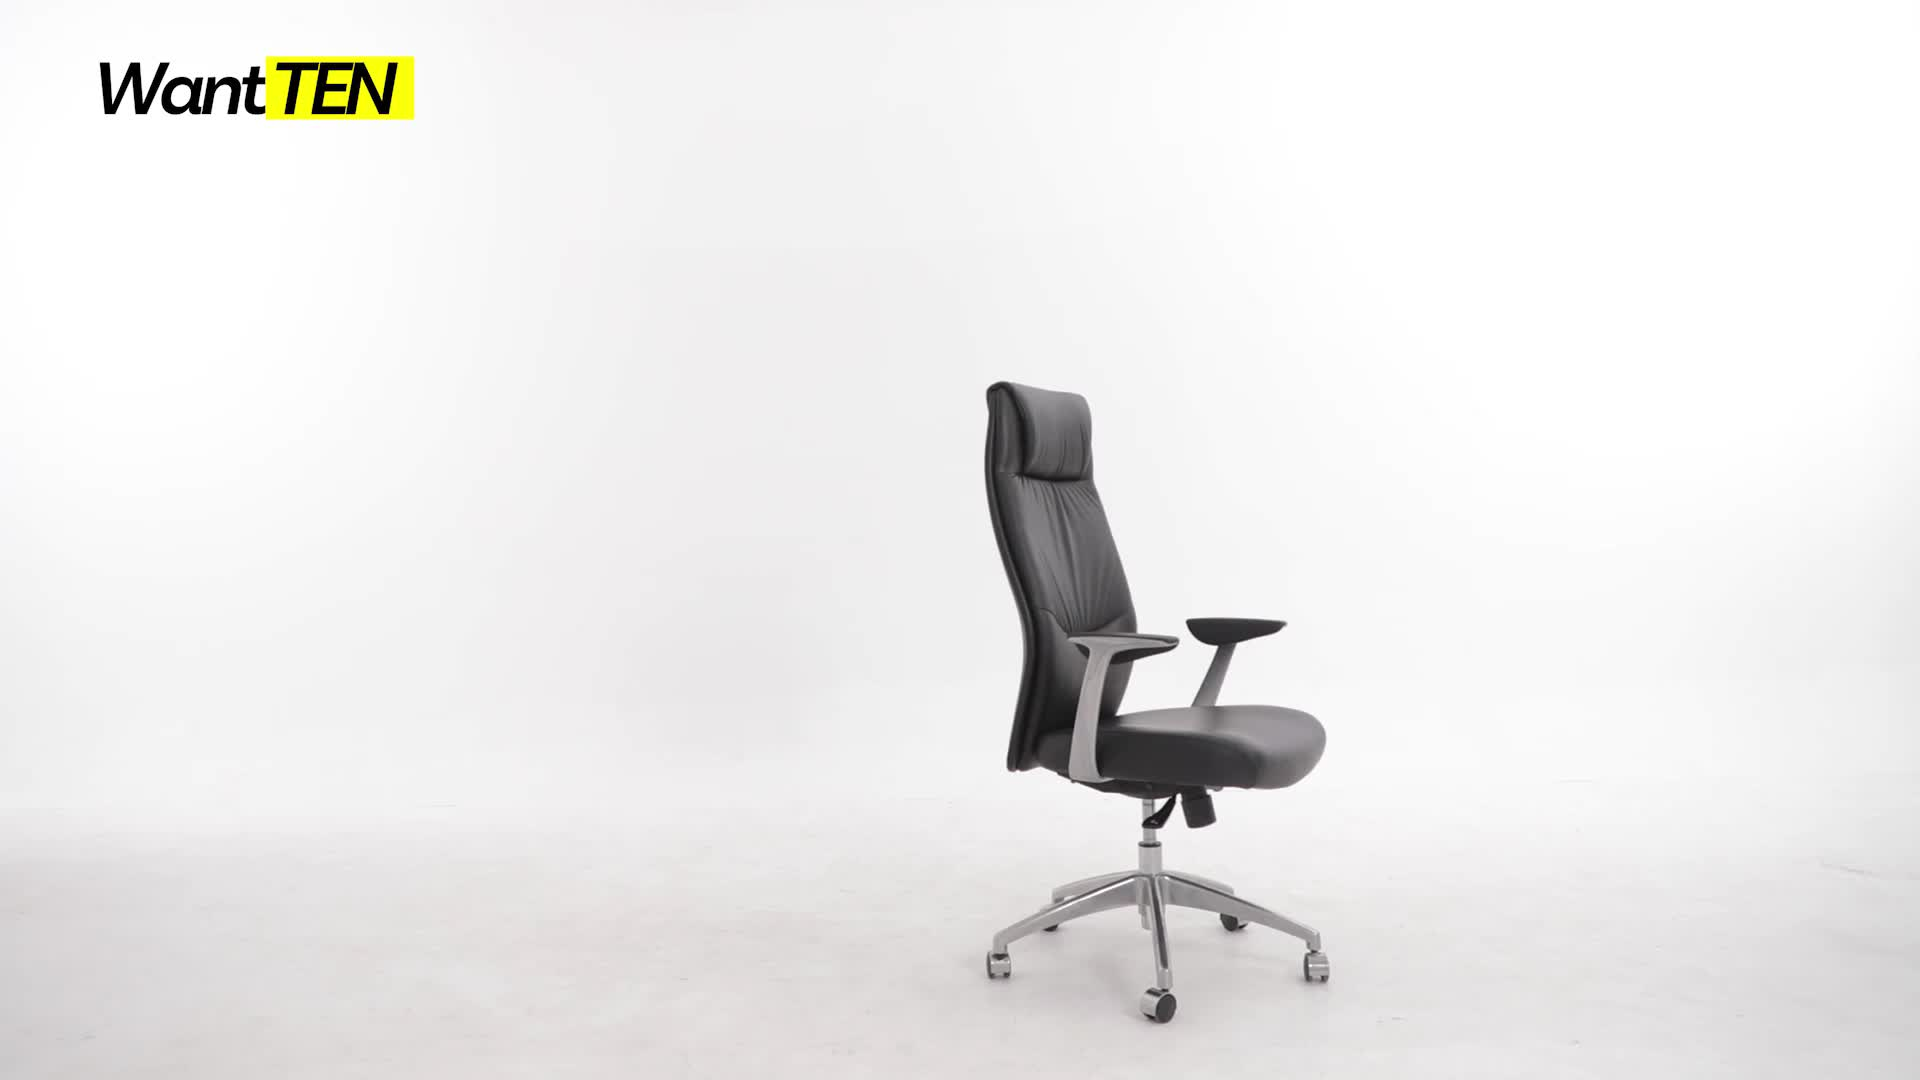 Ignition Seating From Wantten Synchro-tilt mechanism reclines the back Swivel Chair For Manger Office B1809